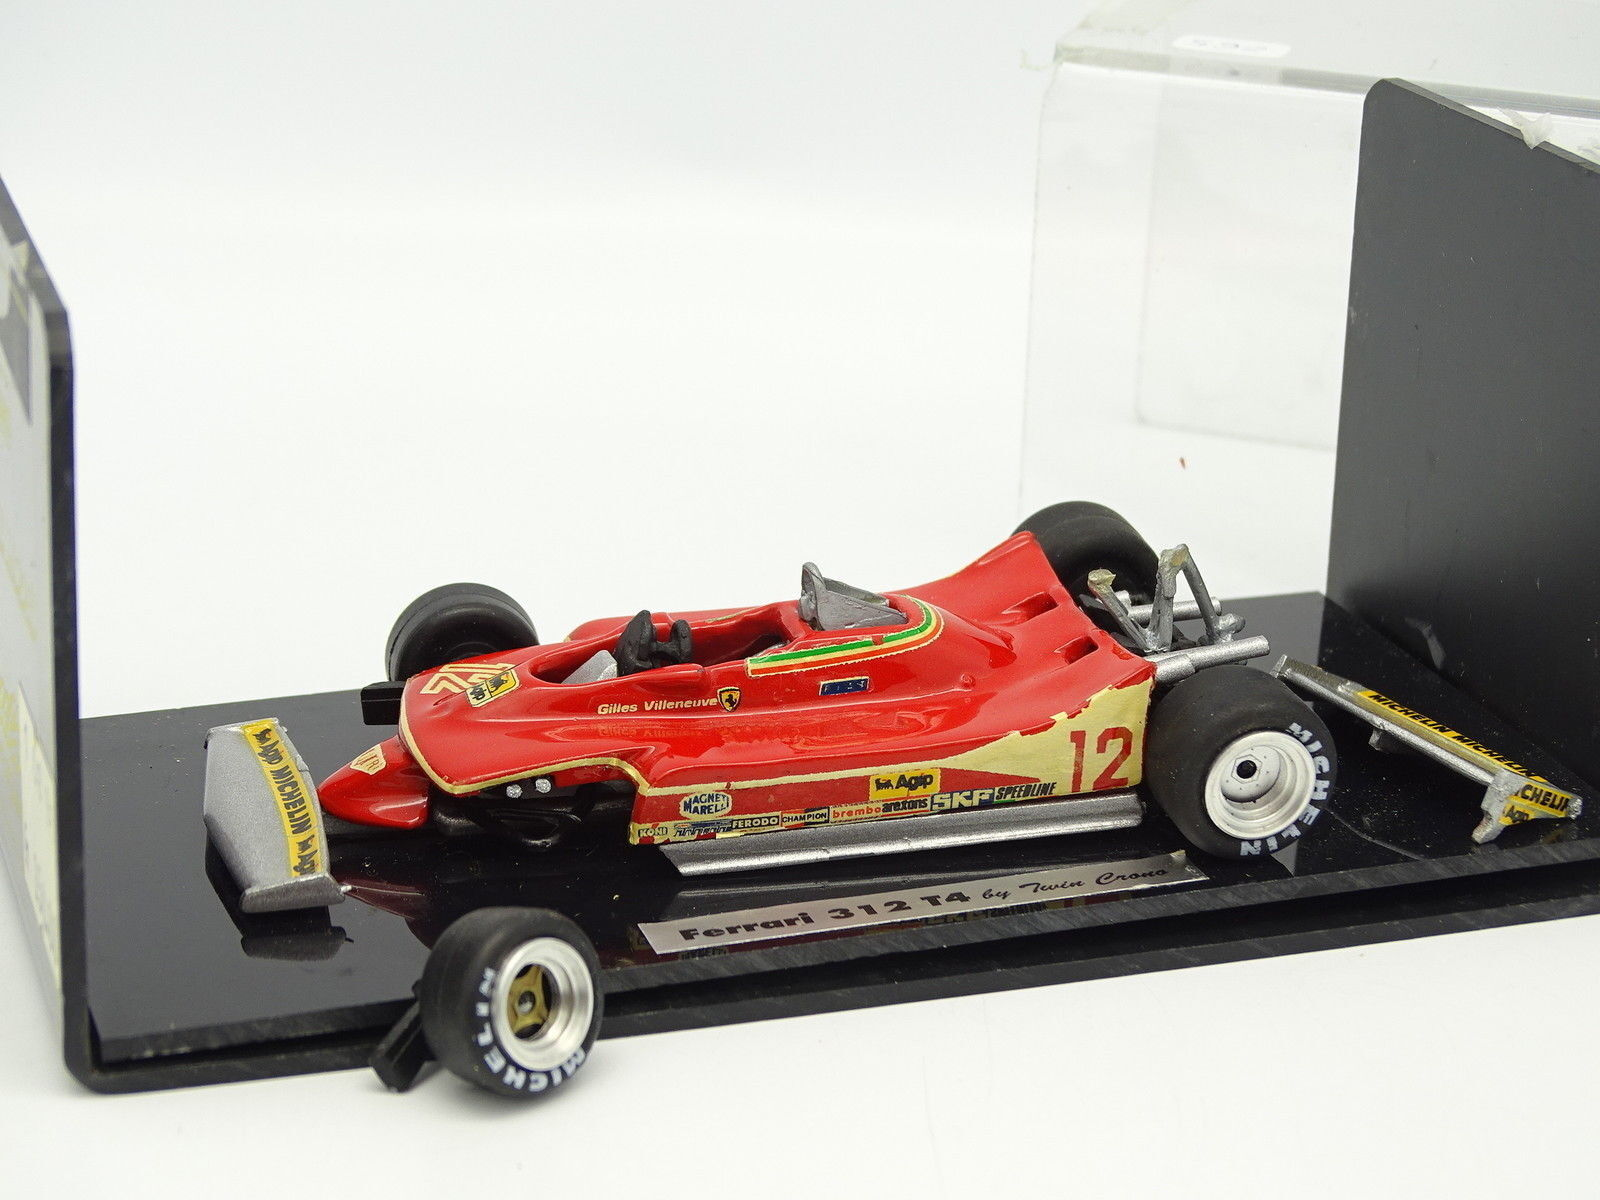 Twin Matt Set Built 1 43 - f1 Ferrari 312 t4 Villeneuve